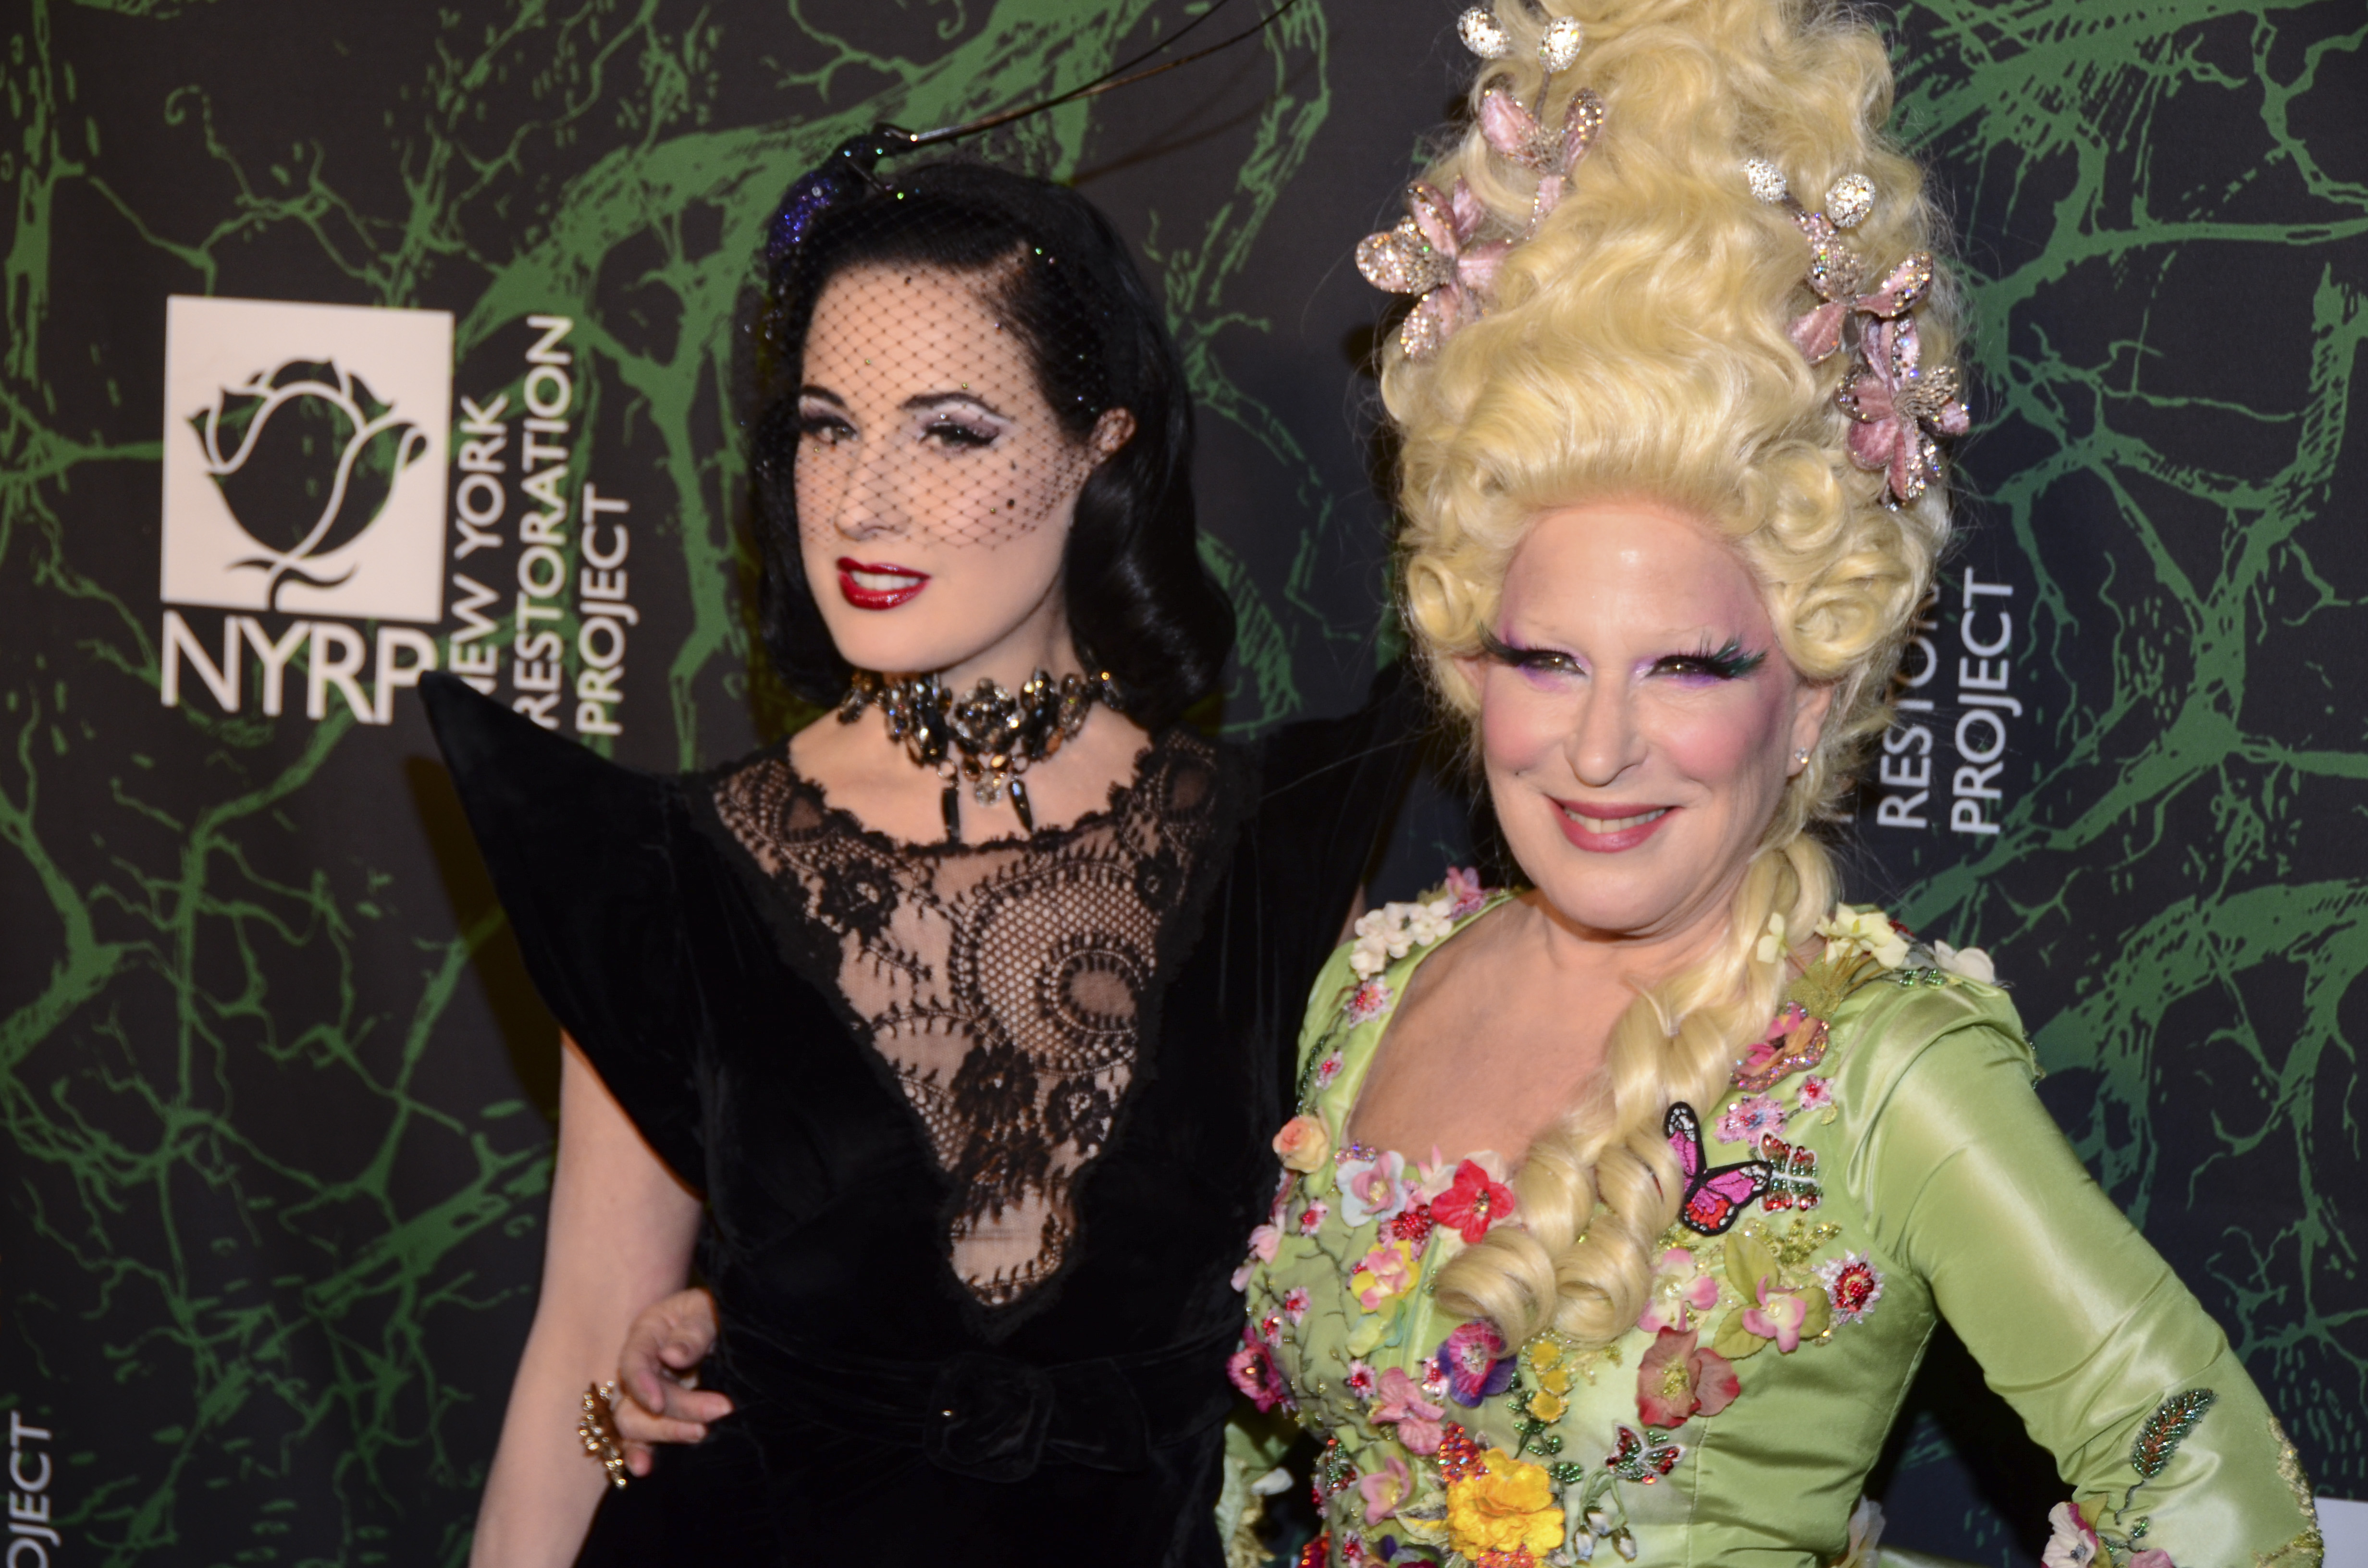 Dita Von Teese, Bette Midler attendBette Midler's Hulaween Party benefiting The New York Restoration Project, Arrivals, New York, USA - 30 Oct 2017